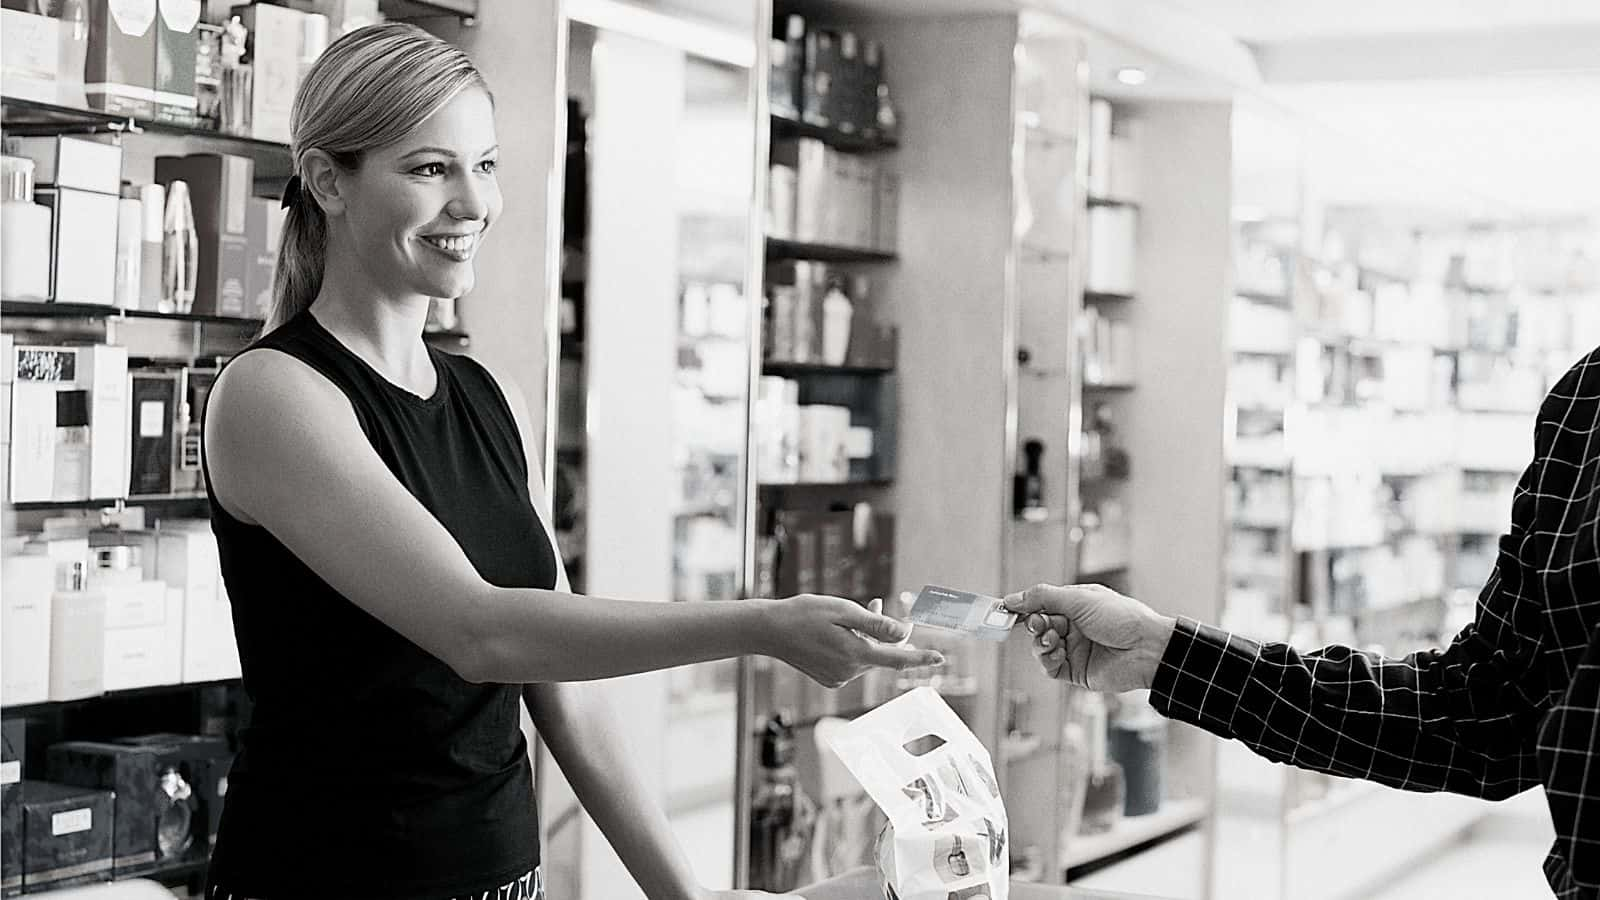 10 Things to Avoid Buying At the Drugstore